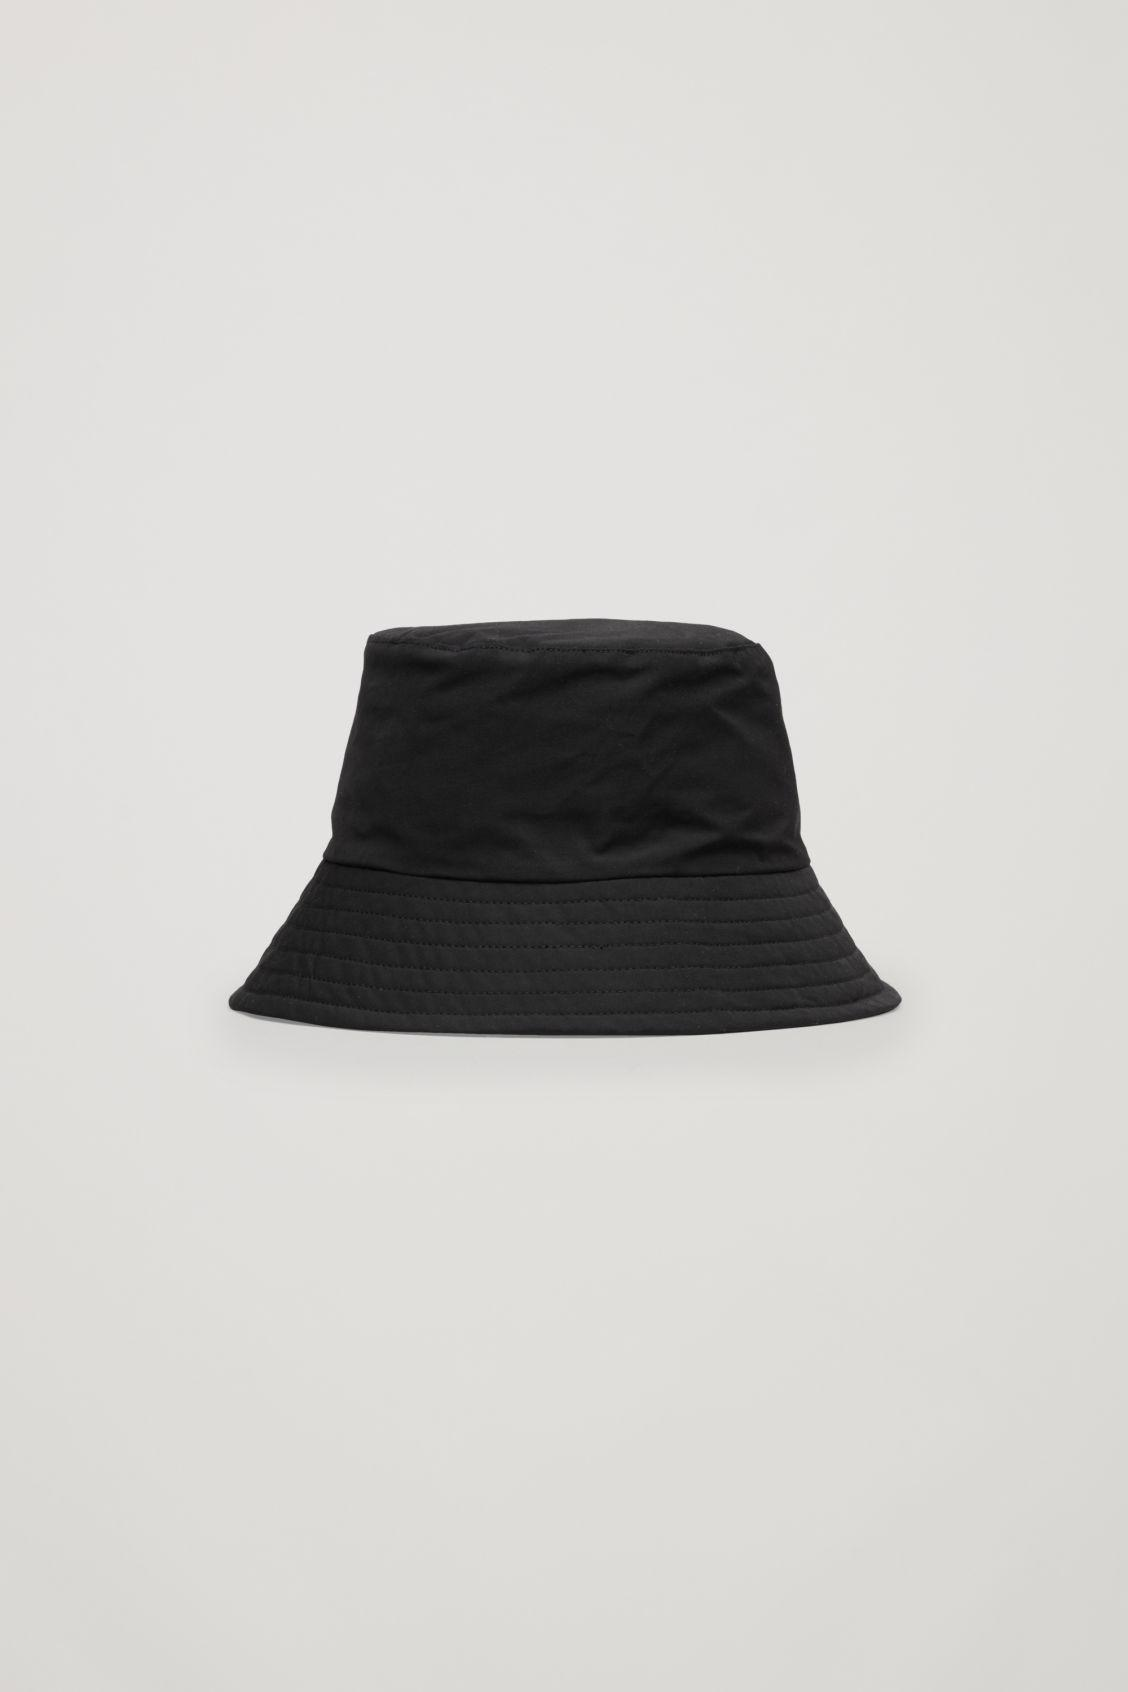 COS Padded Waxed-cotton Bucket Hat in Black - Lyst a5b7f2b92792